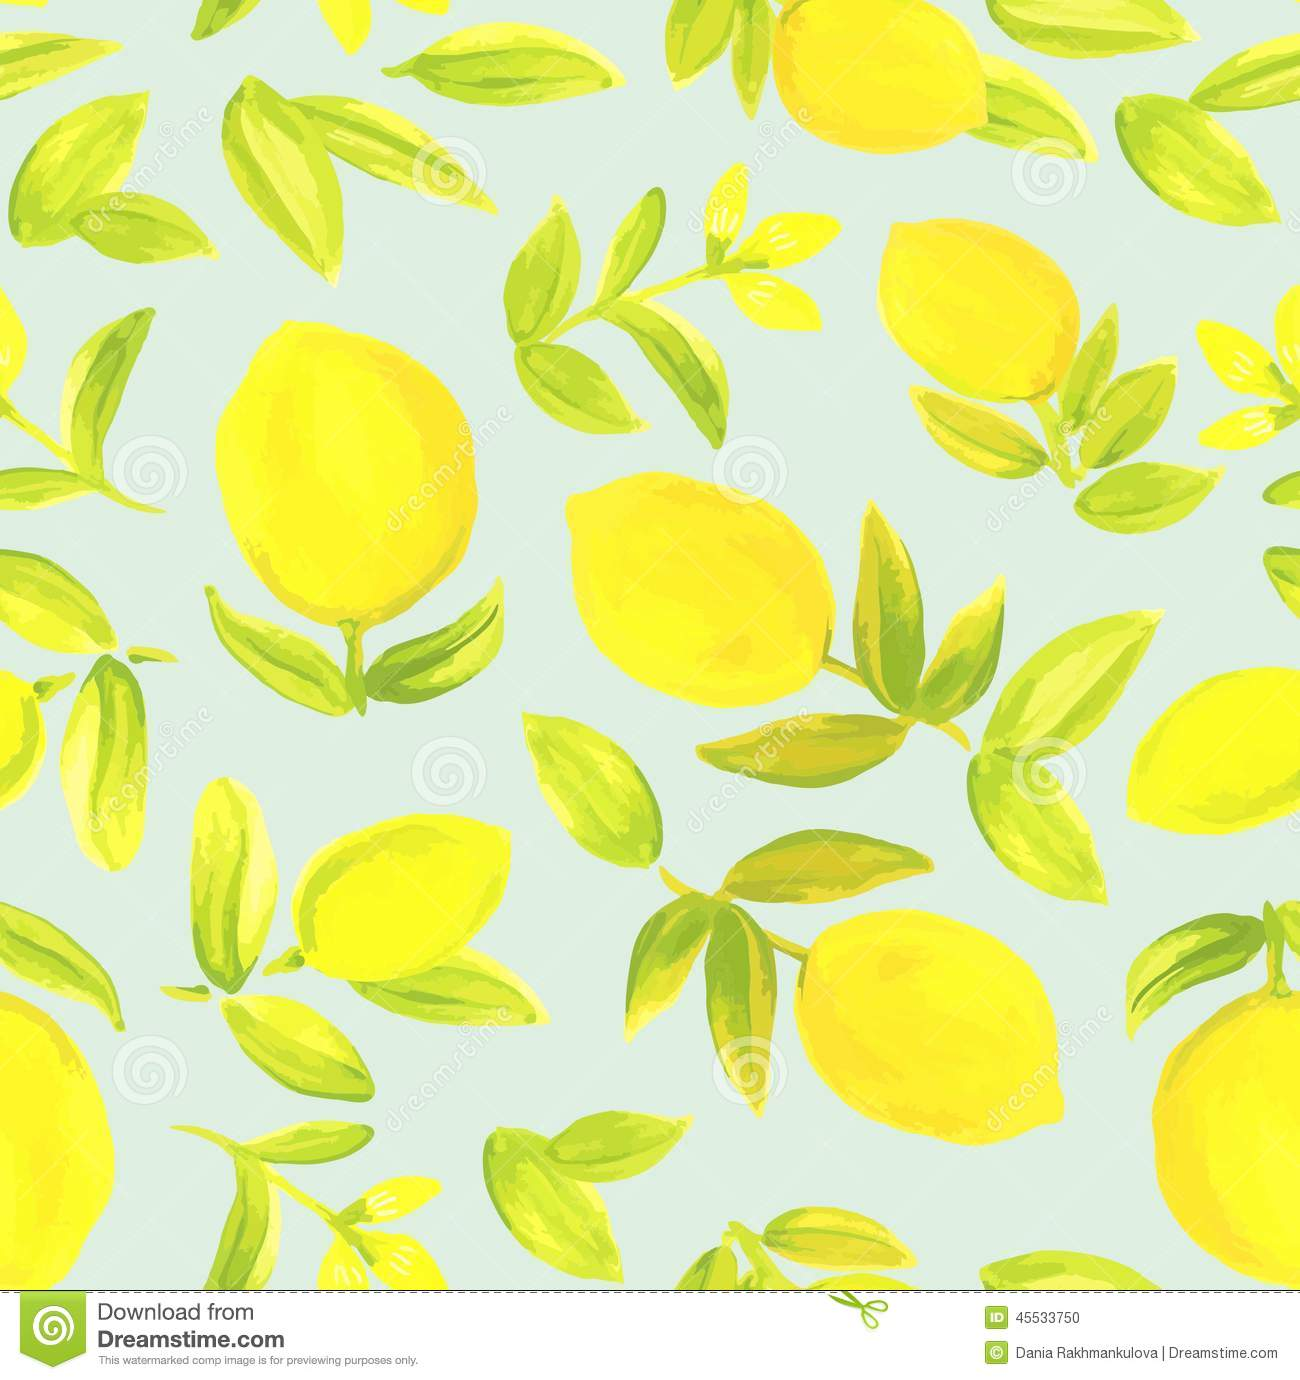 Floral Print Iphone Wallpaper Seamless Pattern With Lemons Stock Illustration Image